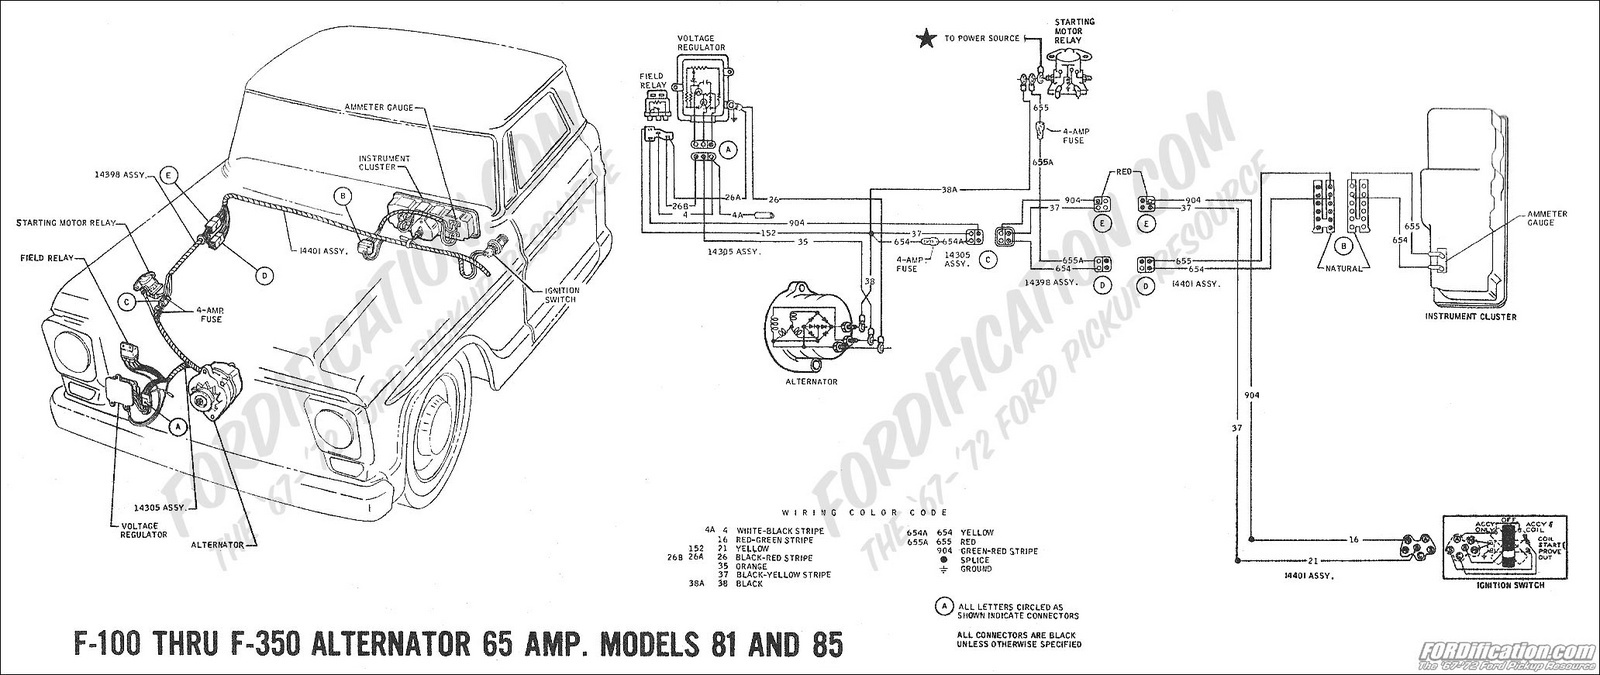 2008 F750 Wiring Diagram Private Sharing About Ford 75 F100 Starter House Symbols U2022 Rh Maxturner Co